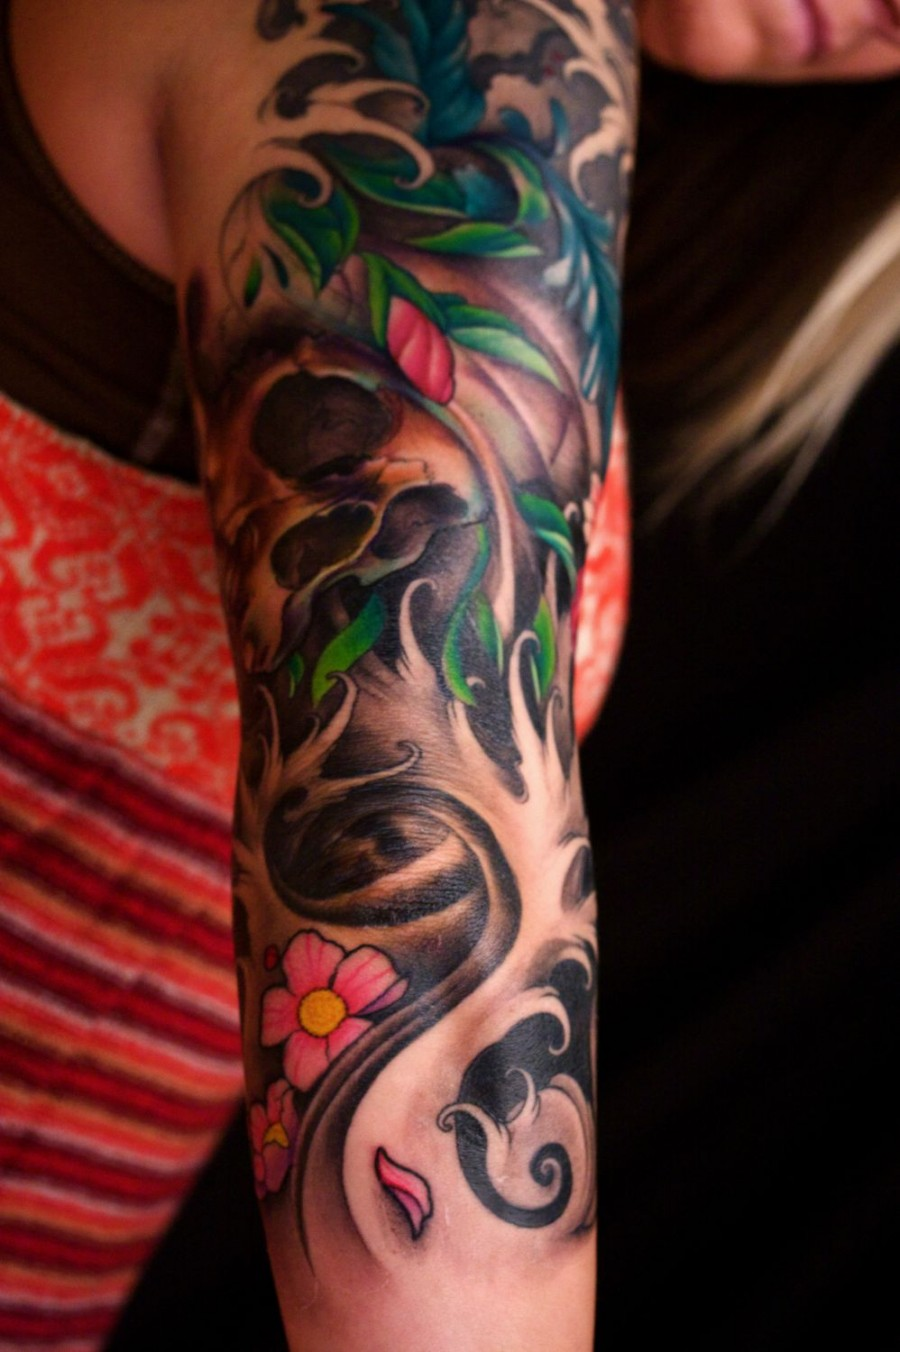 Amazing Sleeve Arm Tattoo Design